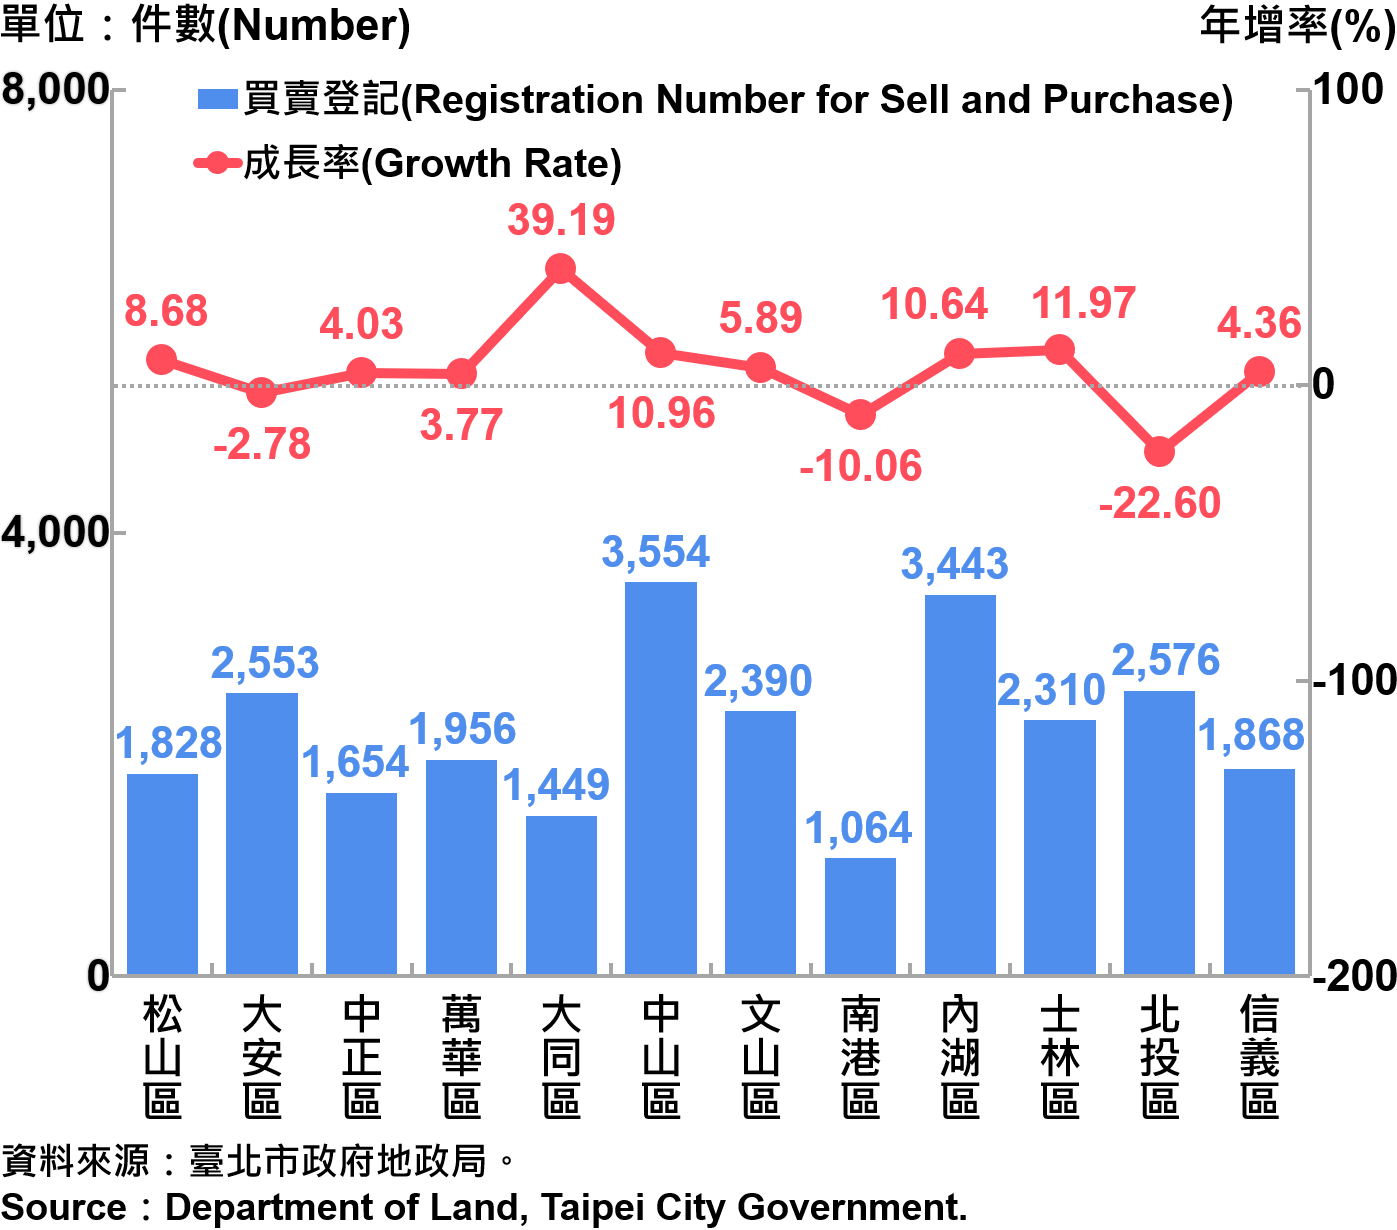 臺北市不動產買賣登記統計—依行政區分—2019 Statistics for Trade in Real Estate Registration by Distinct—2019